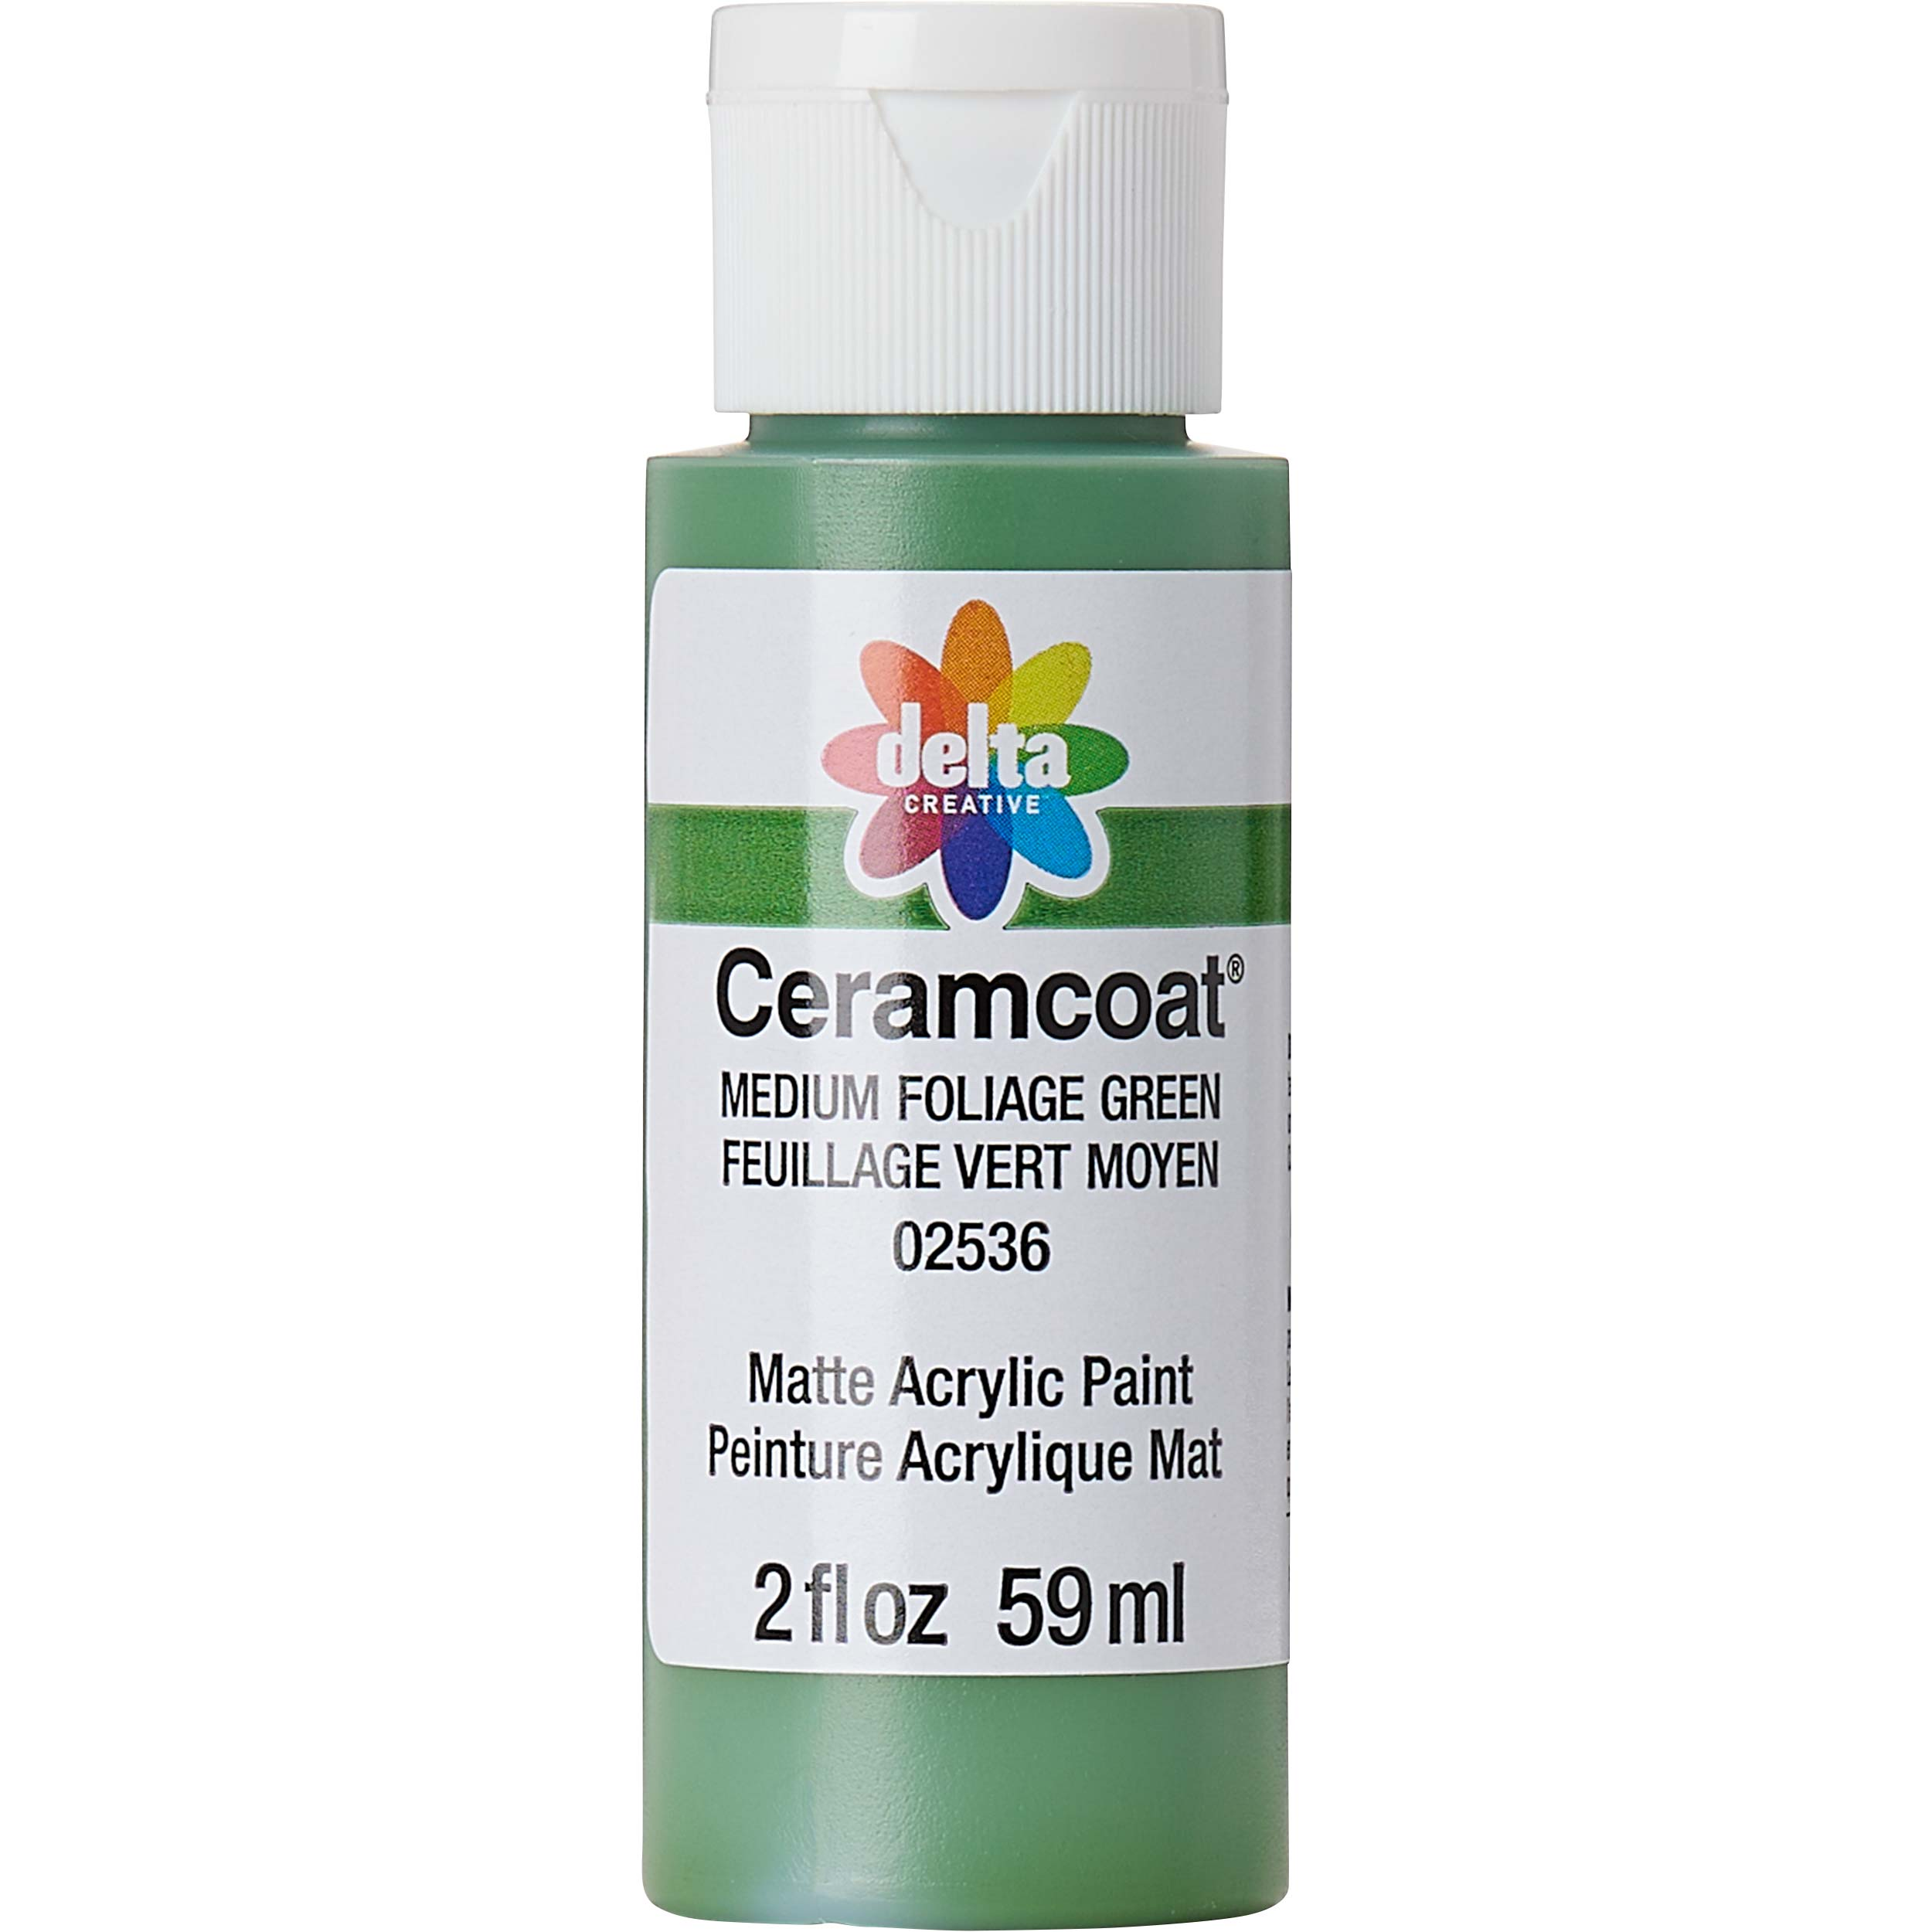 Delta Ceramcoat ® Acrylic Paint - Medium Foliage Green, 2 oz.